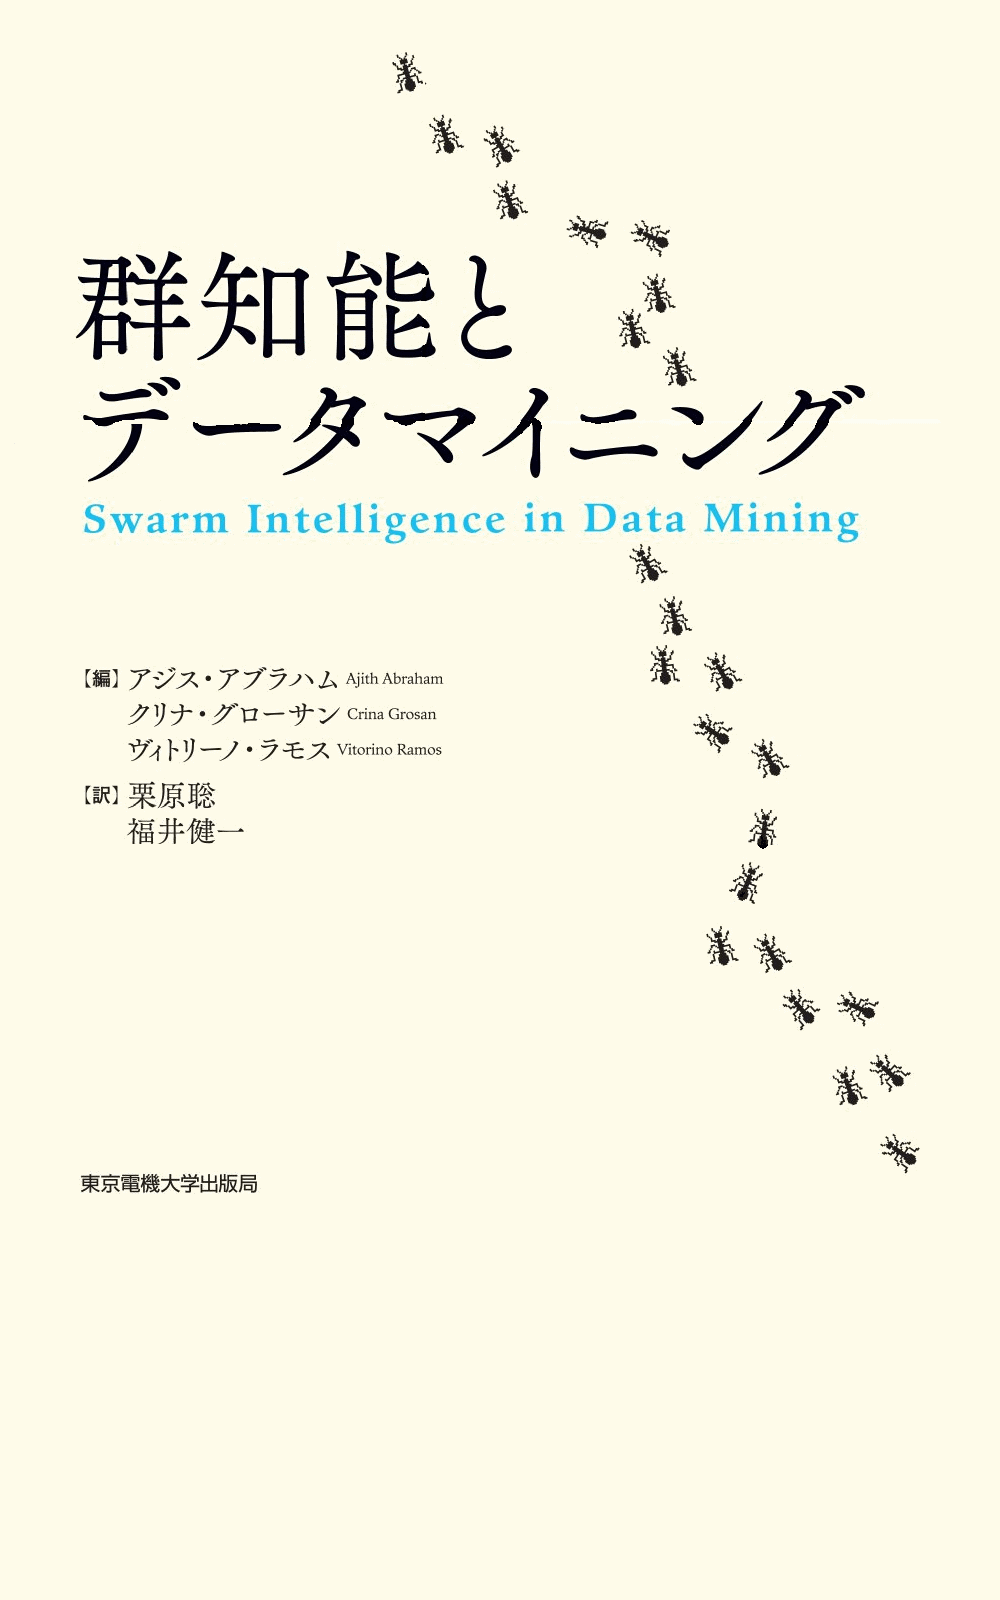 data mining research papers 2012 The journal aims to promote and communicate advances in big data research by  and to showcase the benefits of data driven research, papers  for data mining.